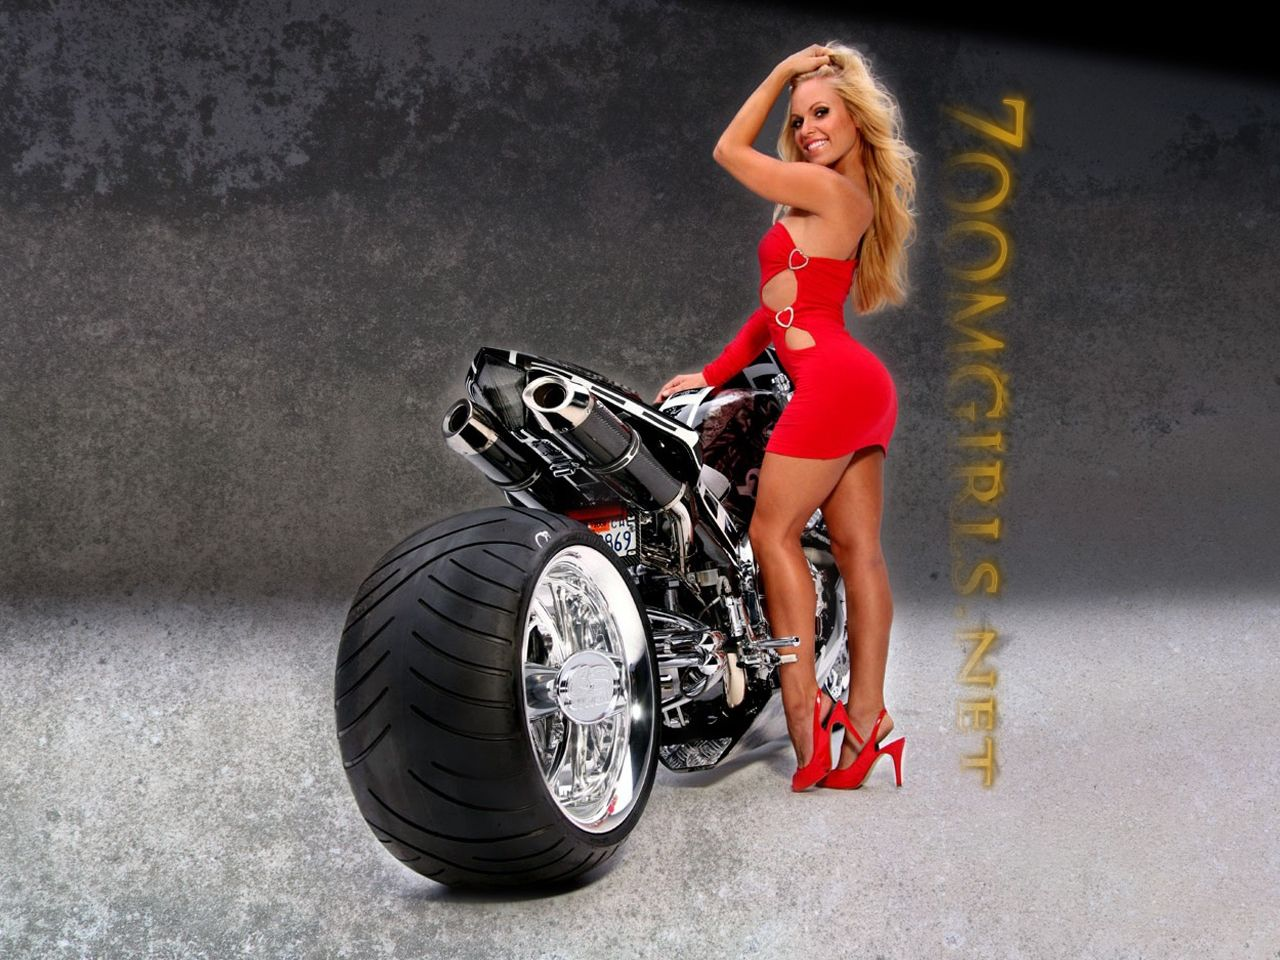 Free Download High Quality Girls &amp Motorcycles Wallpaper Num 136